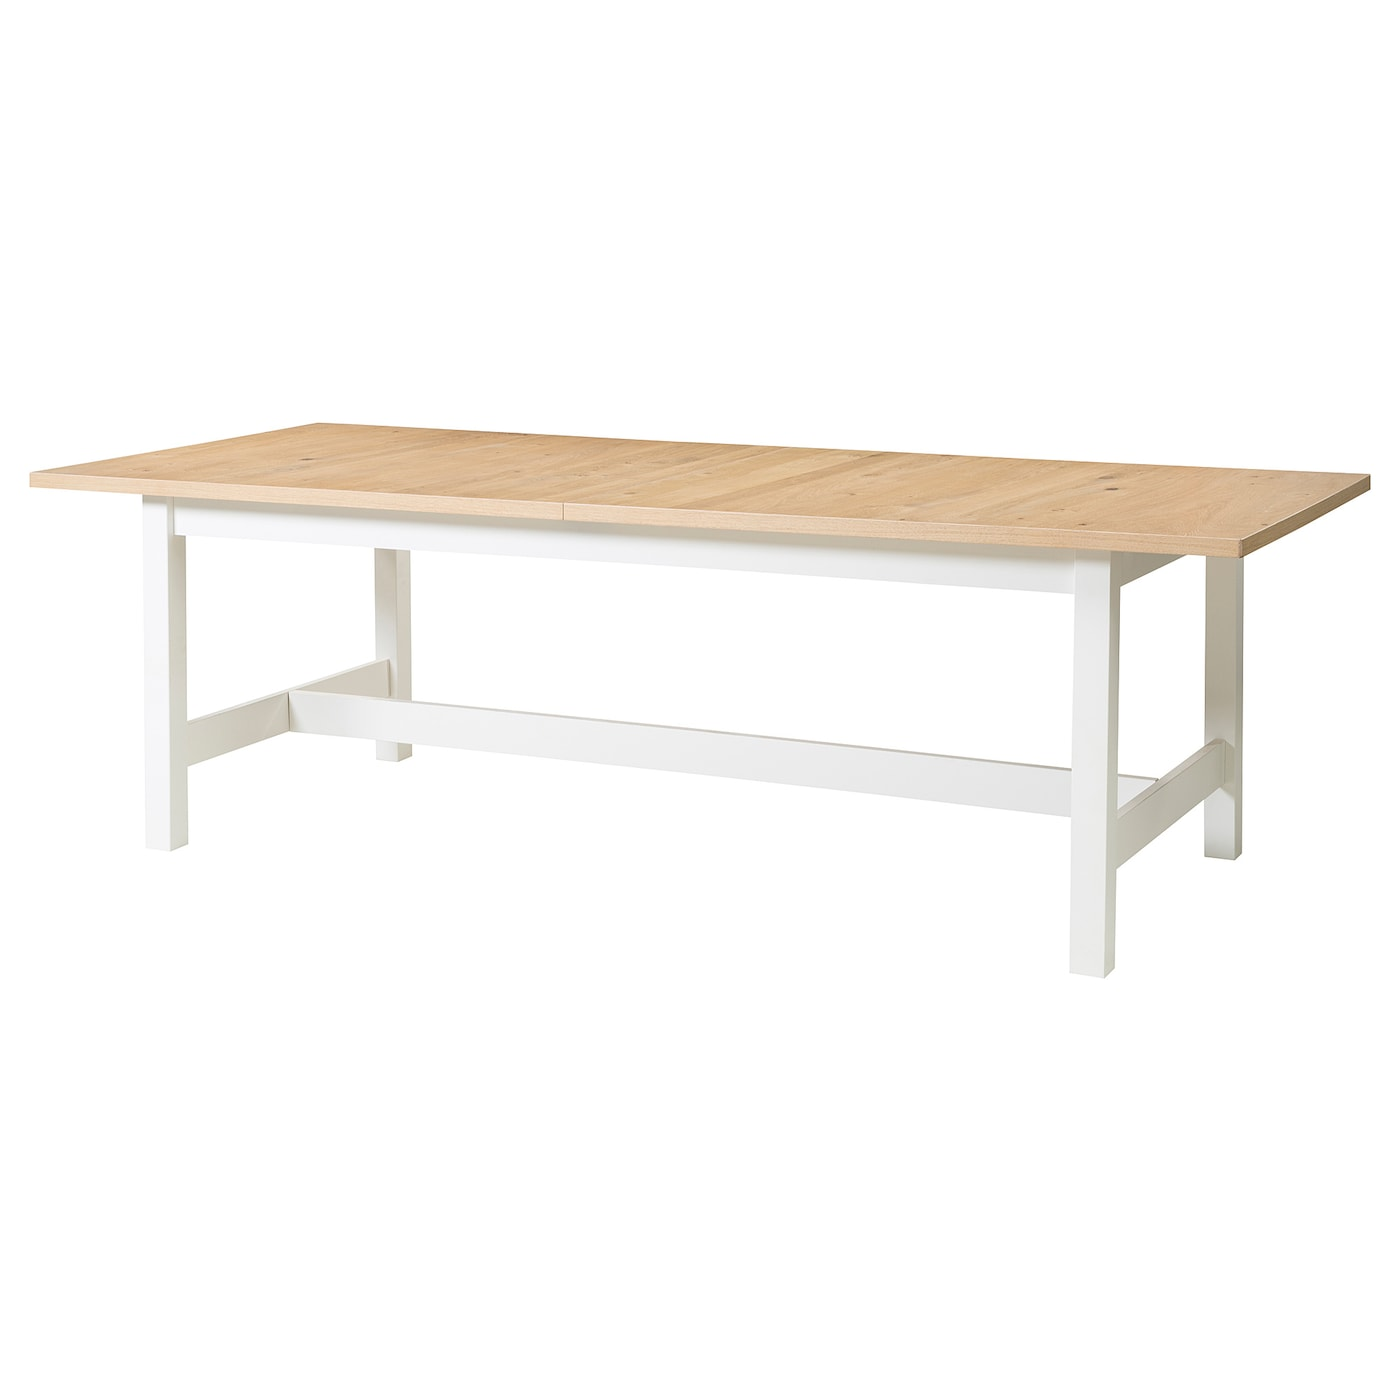 IKEA NORDEN extendable table The extra leaf can be stored within easy reach under the table top.